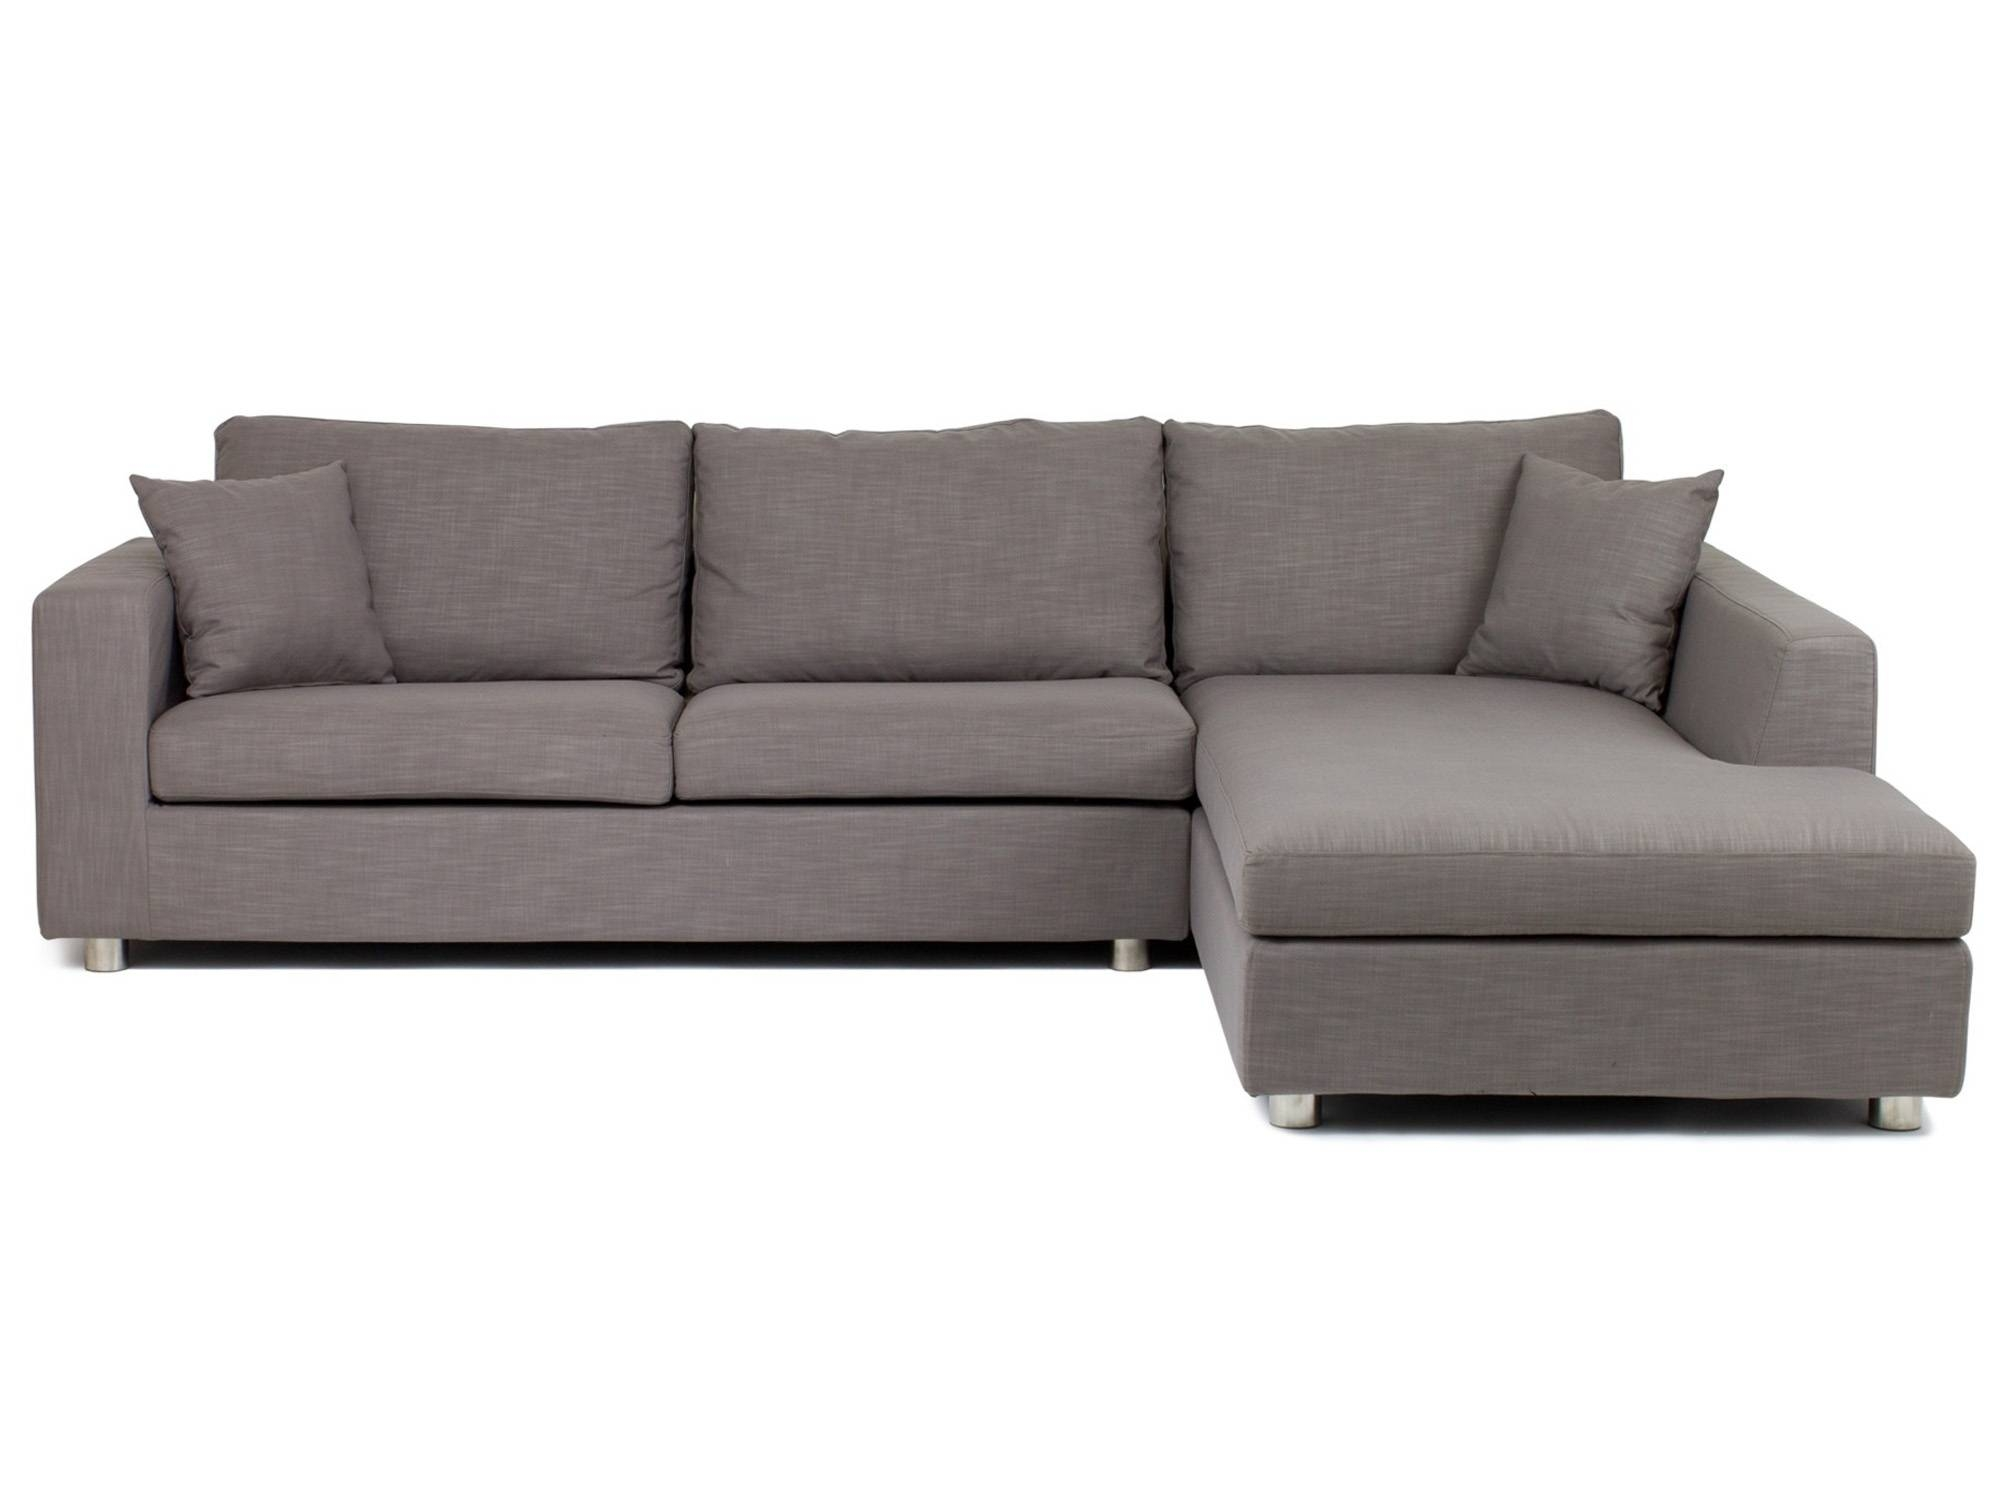 Furniture: Vivacious Chaise Sofa Bed With Softly Bed Foam For With Regard To Sofa Beds With Storage Chaise (View 4 of 15)